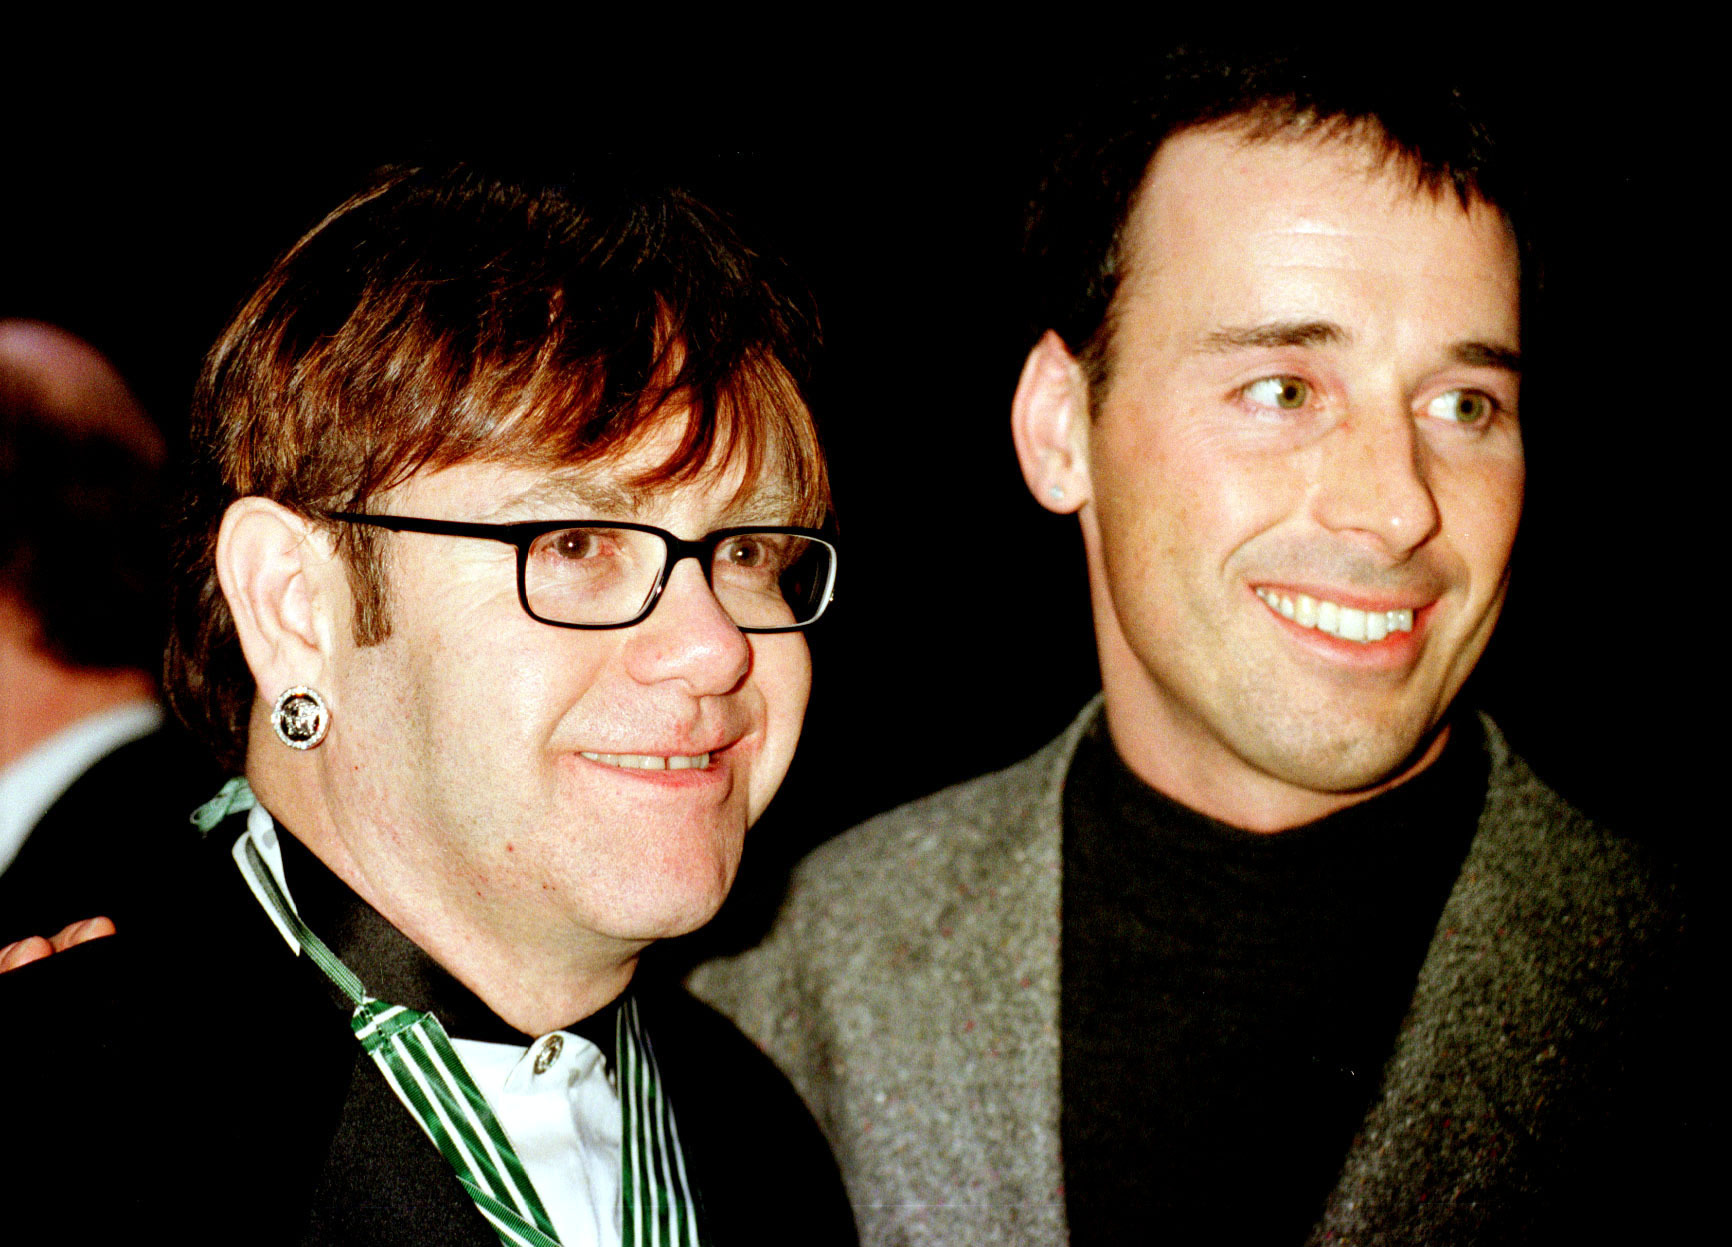 """PARIS : 19/1/97 : ELTON JOHN AND DAVID FURNISH AT THE THEATRE NATIONAL IN PARIS AFTER THE PERFORMANCE OF """"LE PRESBYTERE N'A RIEN PERDU SON CHARME NI LE JARDIN DE SON ECLAT"""". PA NEWS PHOTO BY DAVE CHESKIN."""